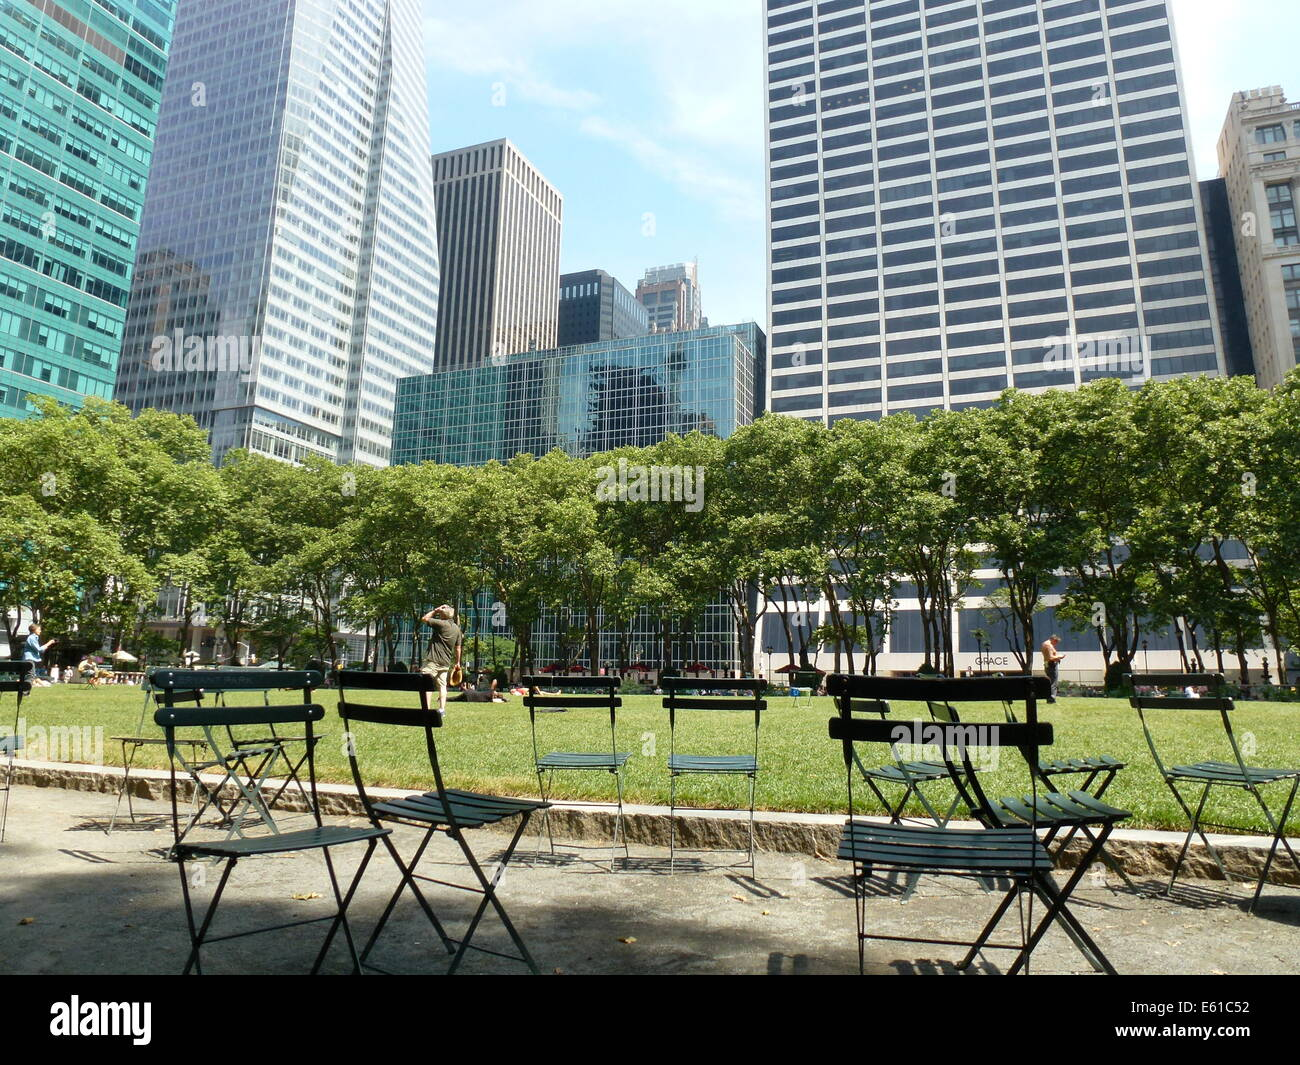 garden chairs with the writing bryant park are pictured in bryant